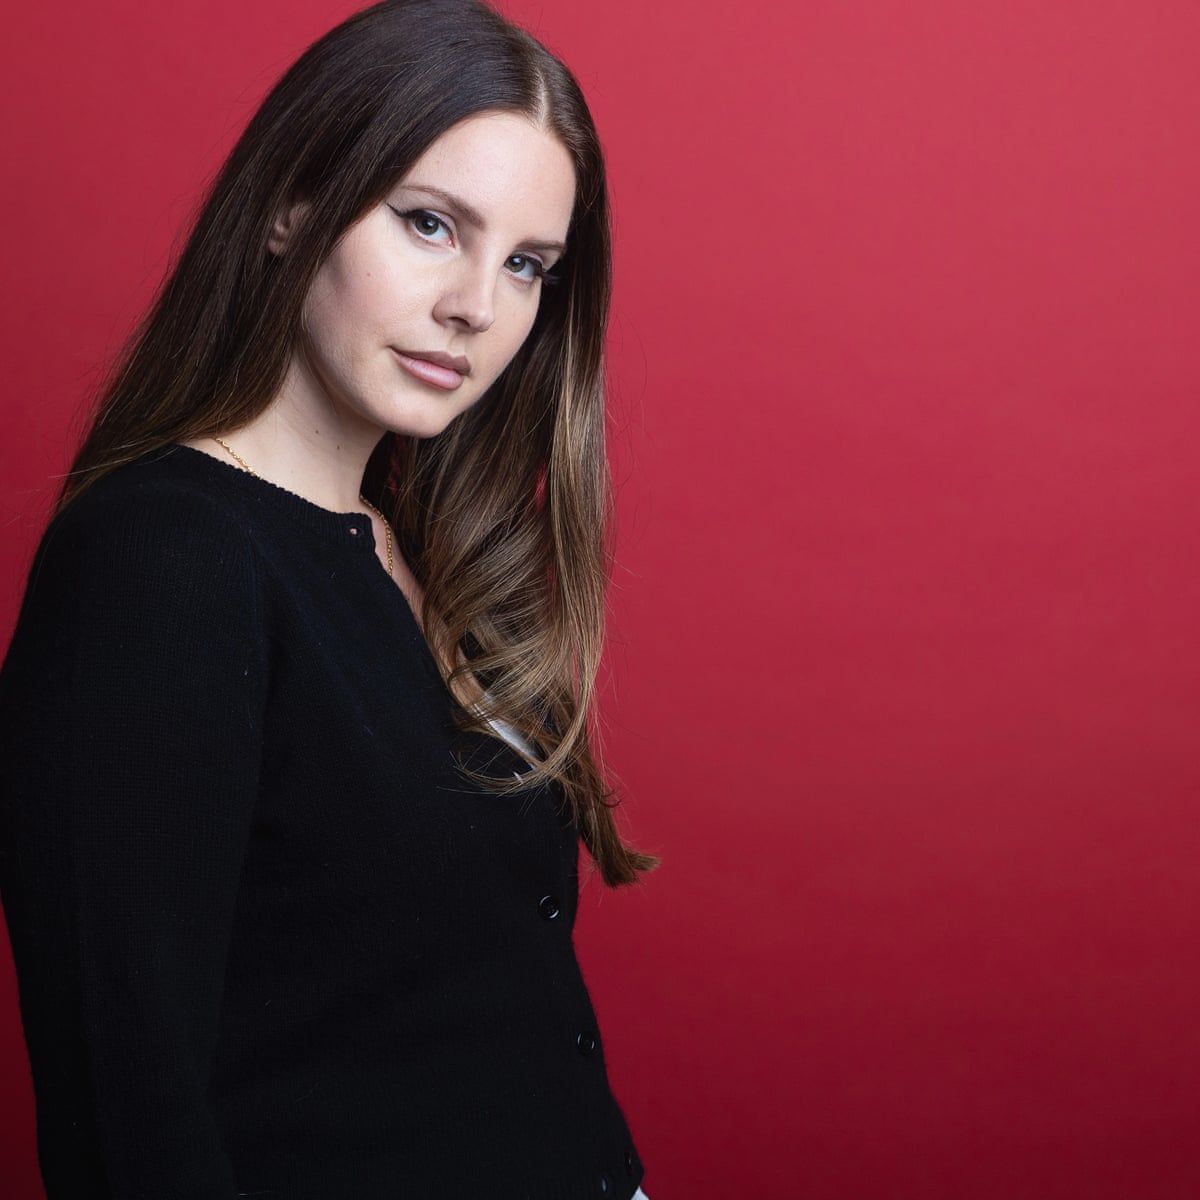 The Best Albums Of 2019 No 1 Lana Del Rey Norman Fucking Rockwell Music The Guardian